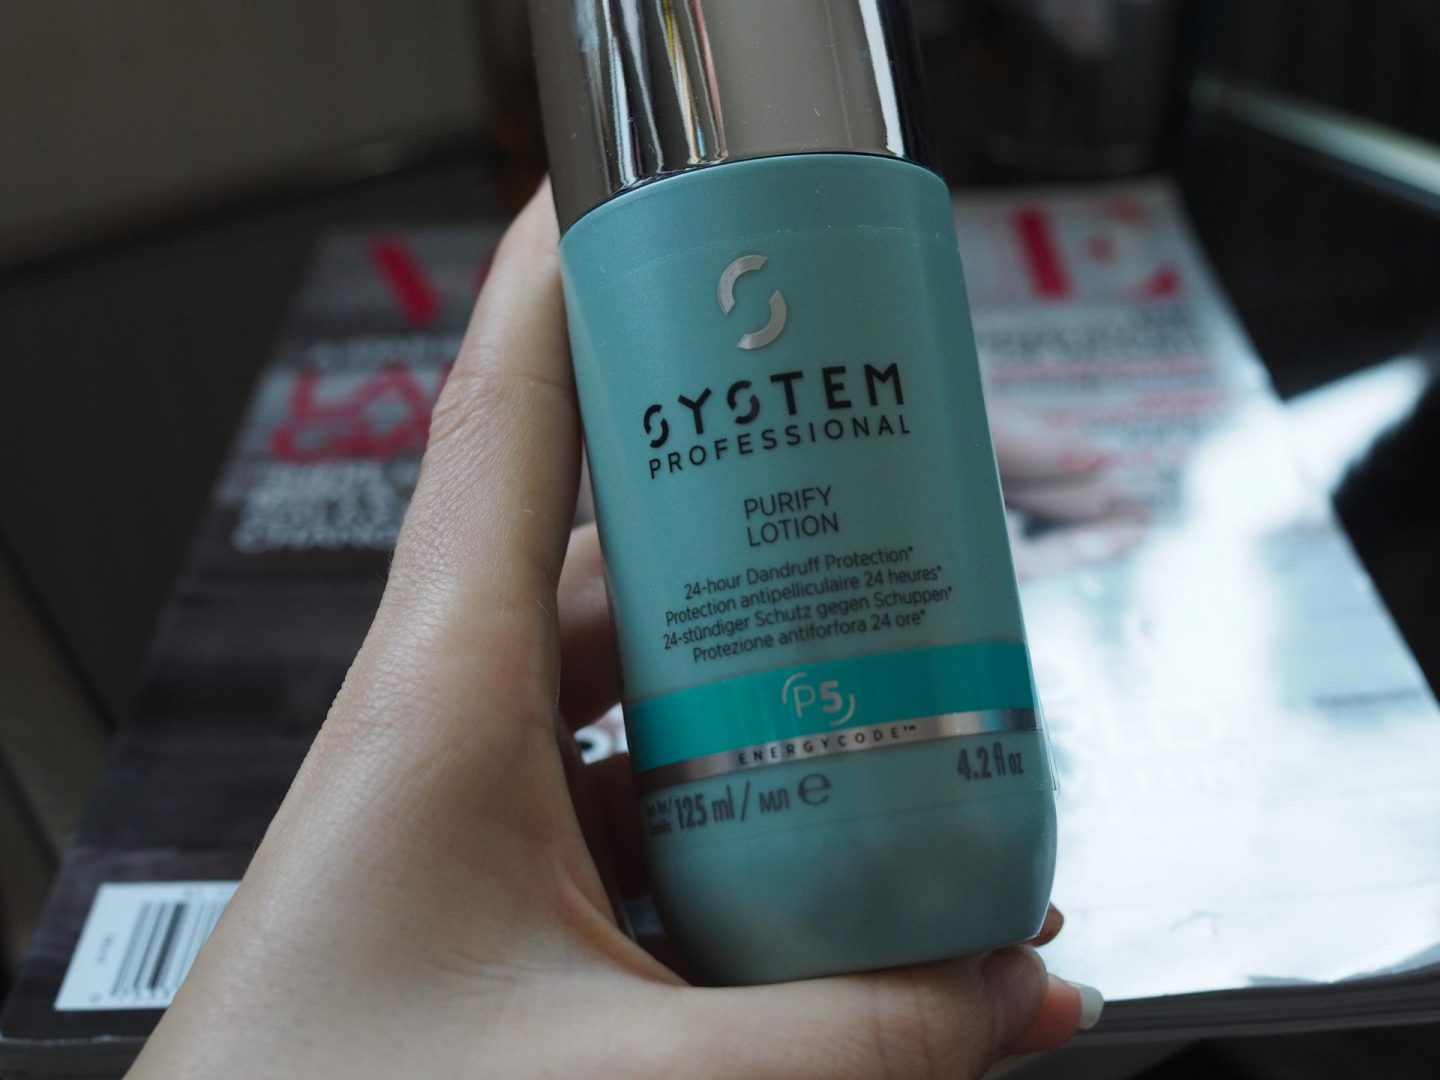 System Professional Purify Lotion